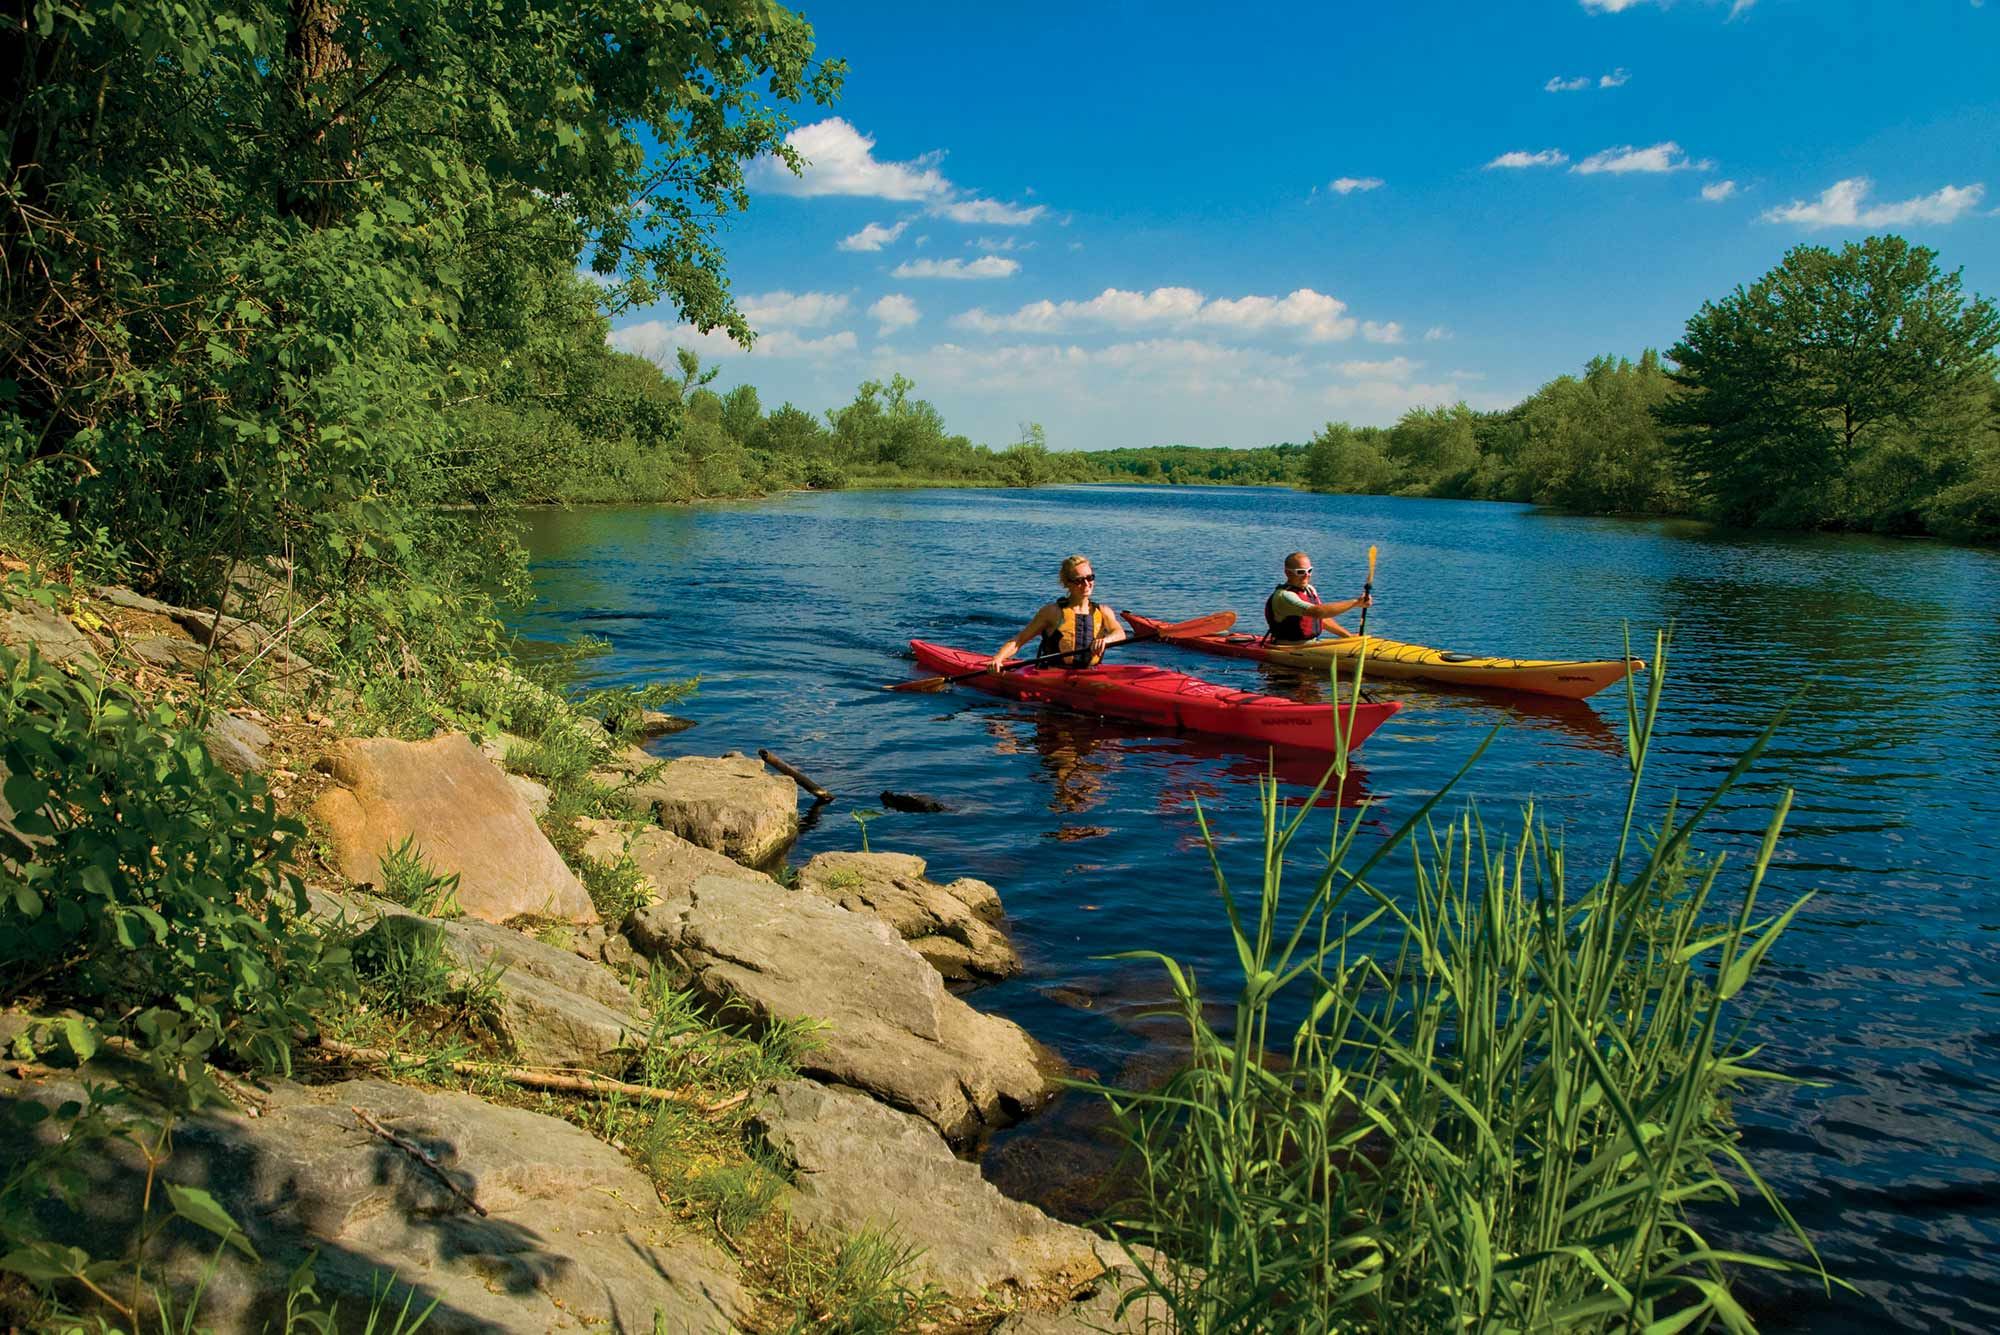 Image of two people kayaking on a river on a sunny day. One kayak is red, the other yellow. Photo taken from the shoreline, rocks and brush are seen in the foreground.